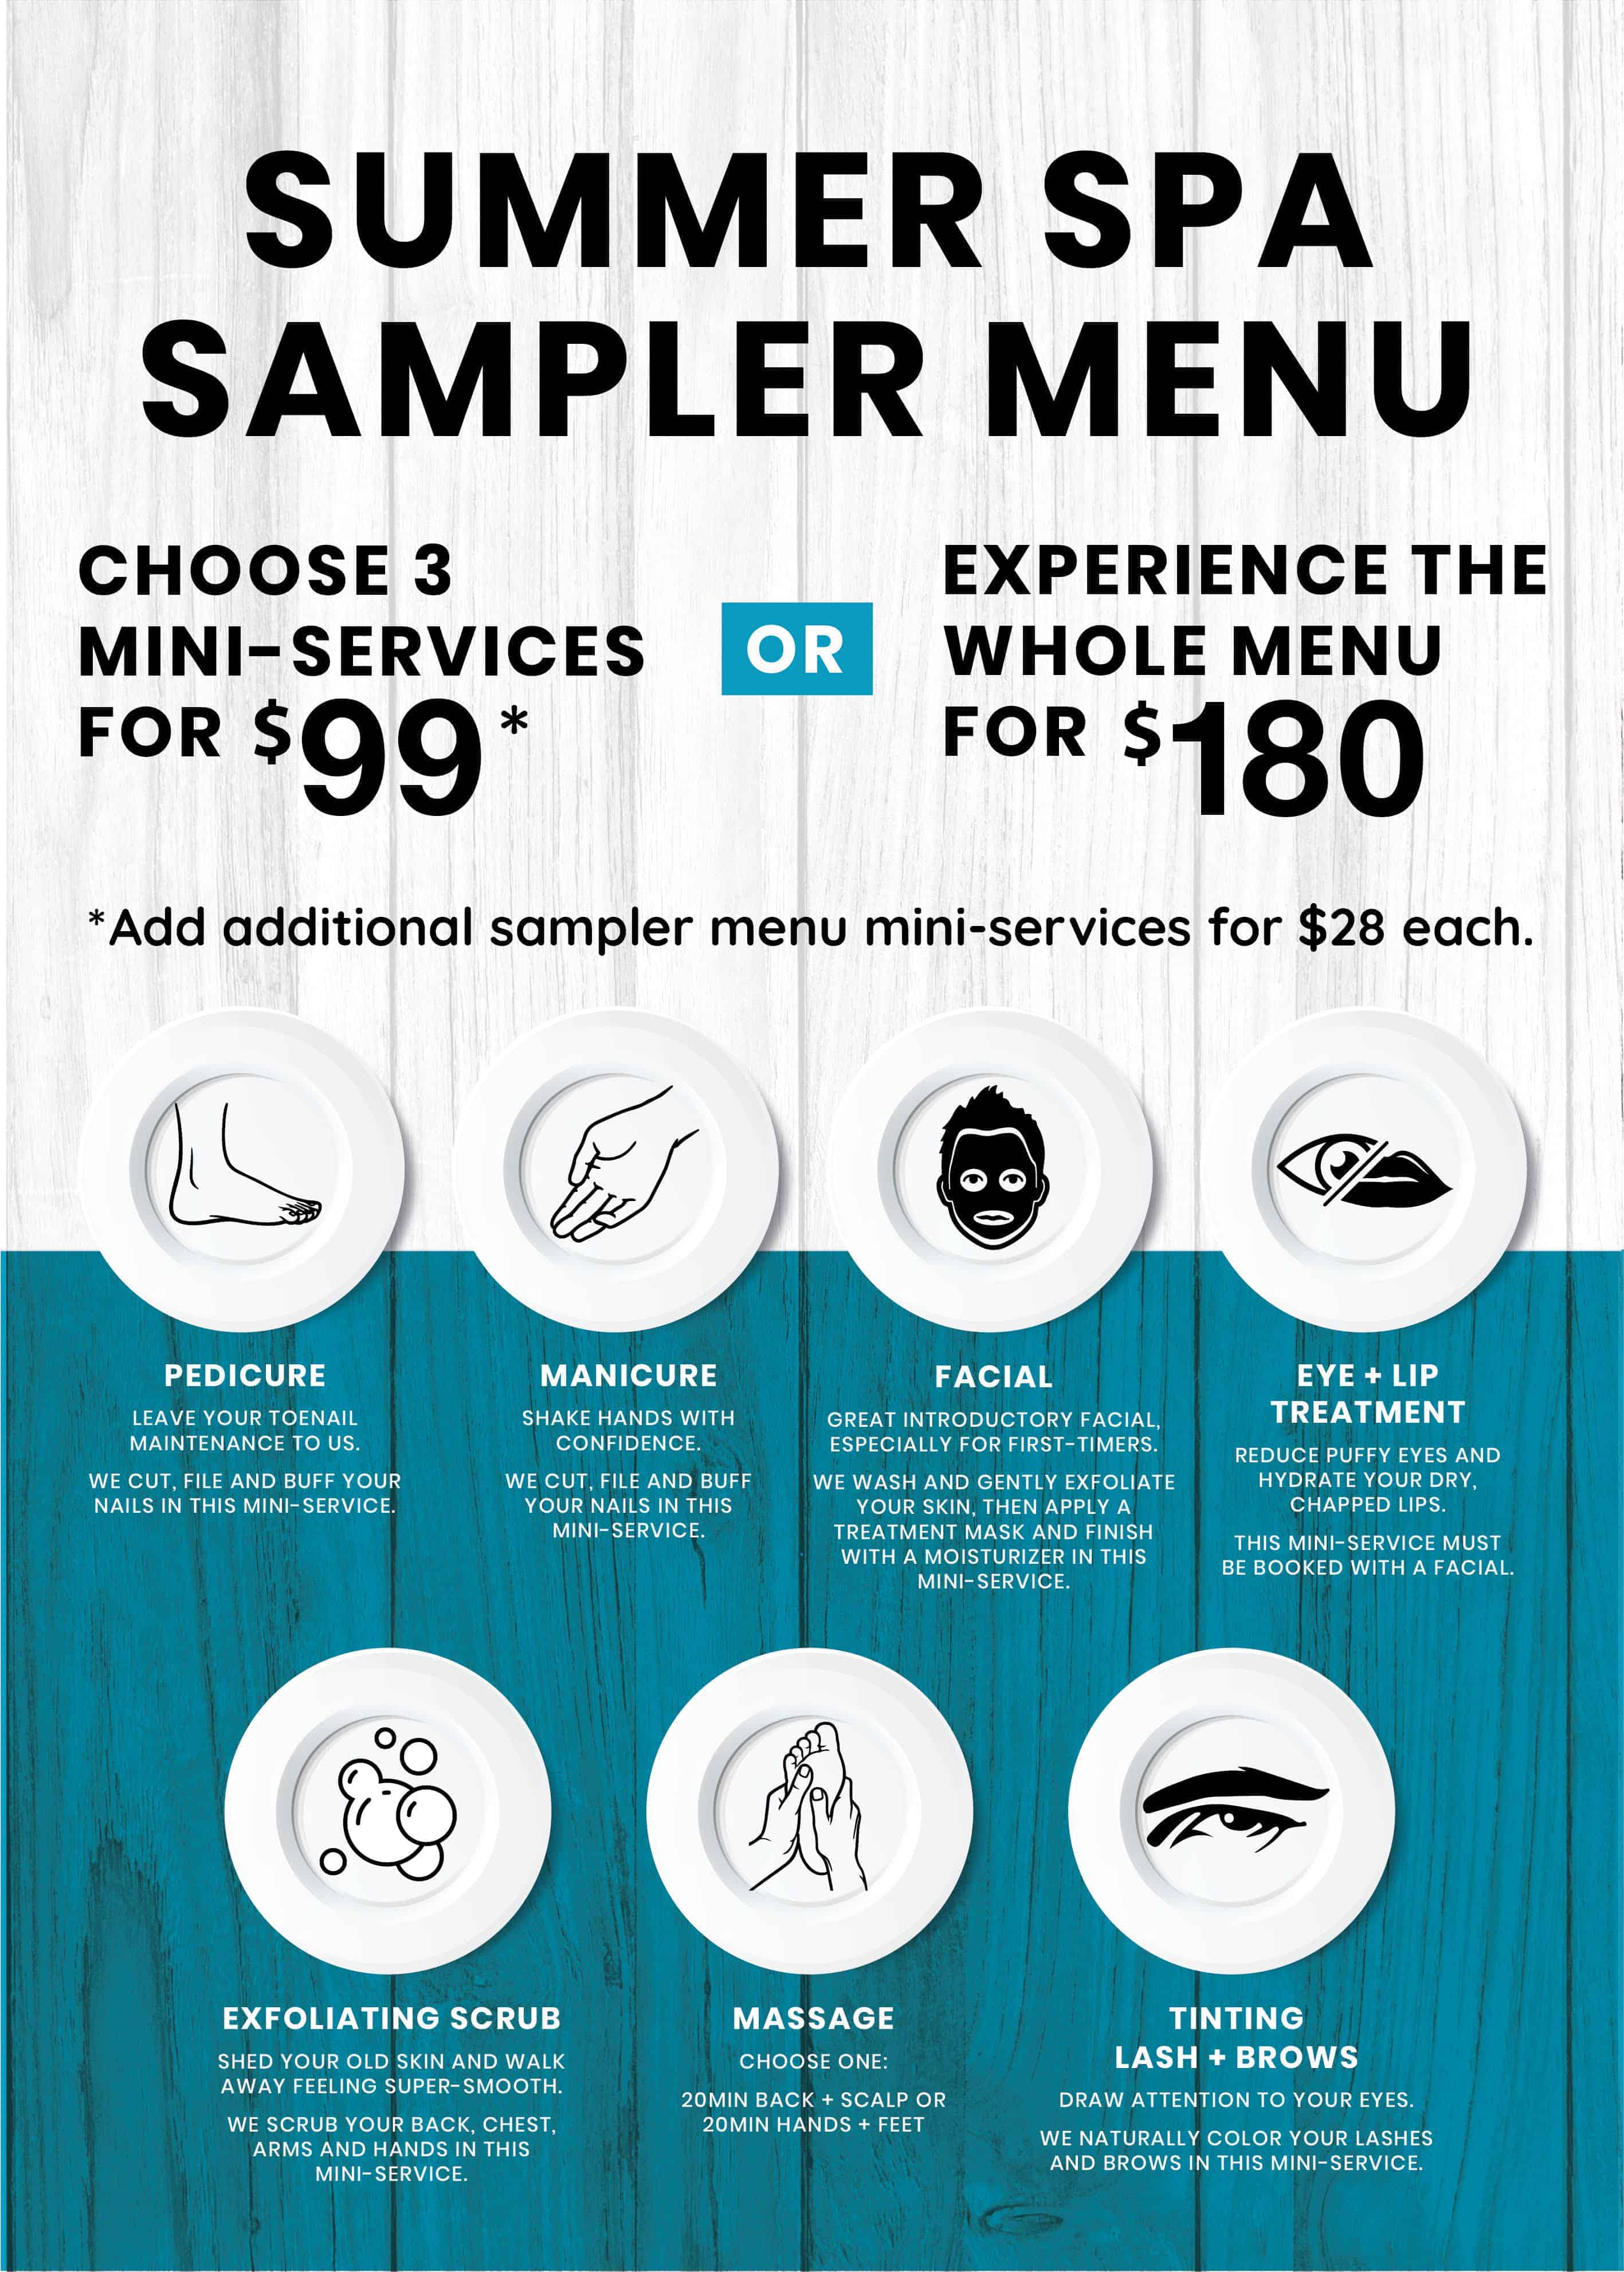 Choose 3 mini-services for $99 OR Experience the whole menu for $180. Pedicure, Manicure, Facial, Eye & Lip treatment, Exfoliating scrub, Massage.